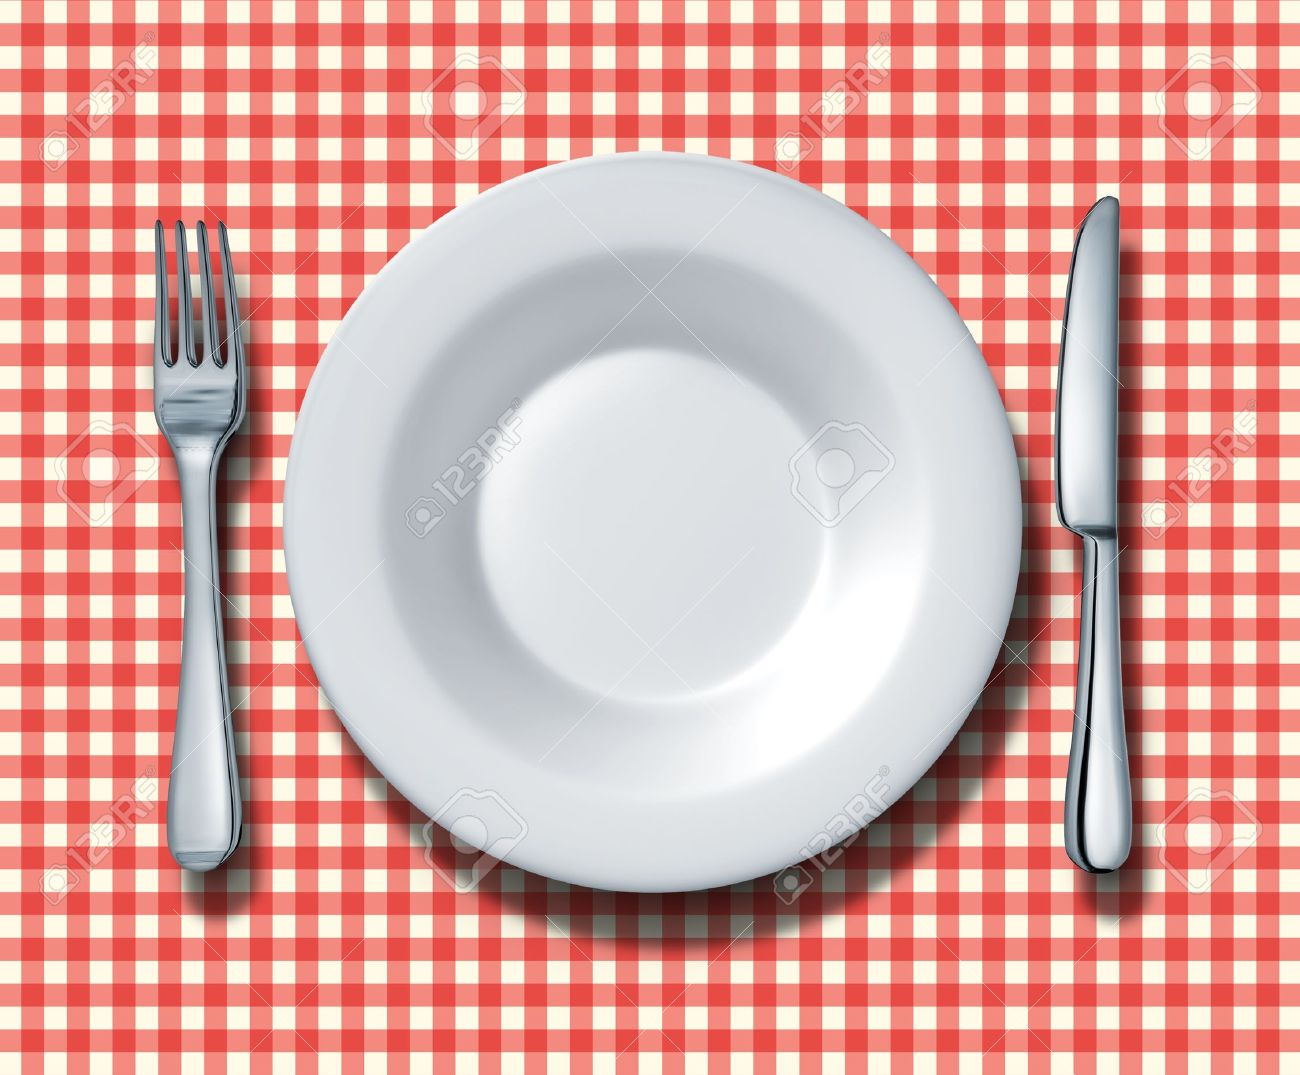 Place Setting For A Family Restaurant With A Red And White Checkered Table  Cloth With A